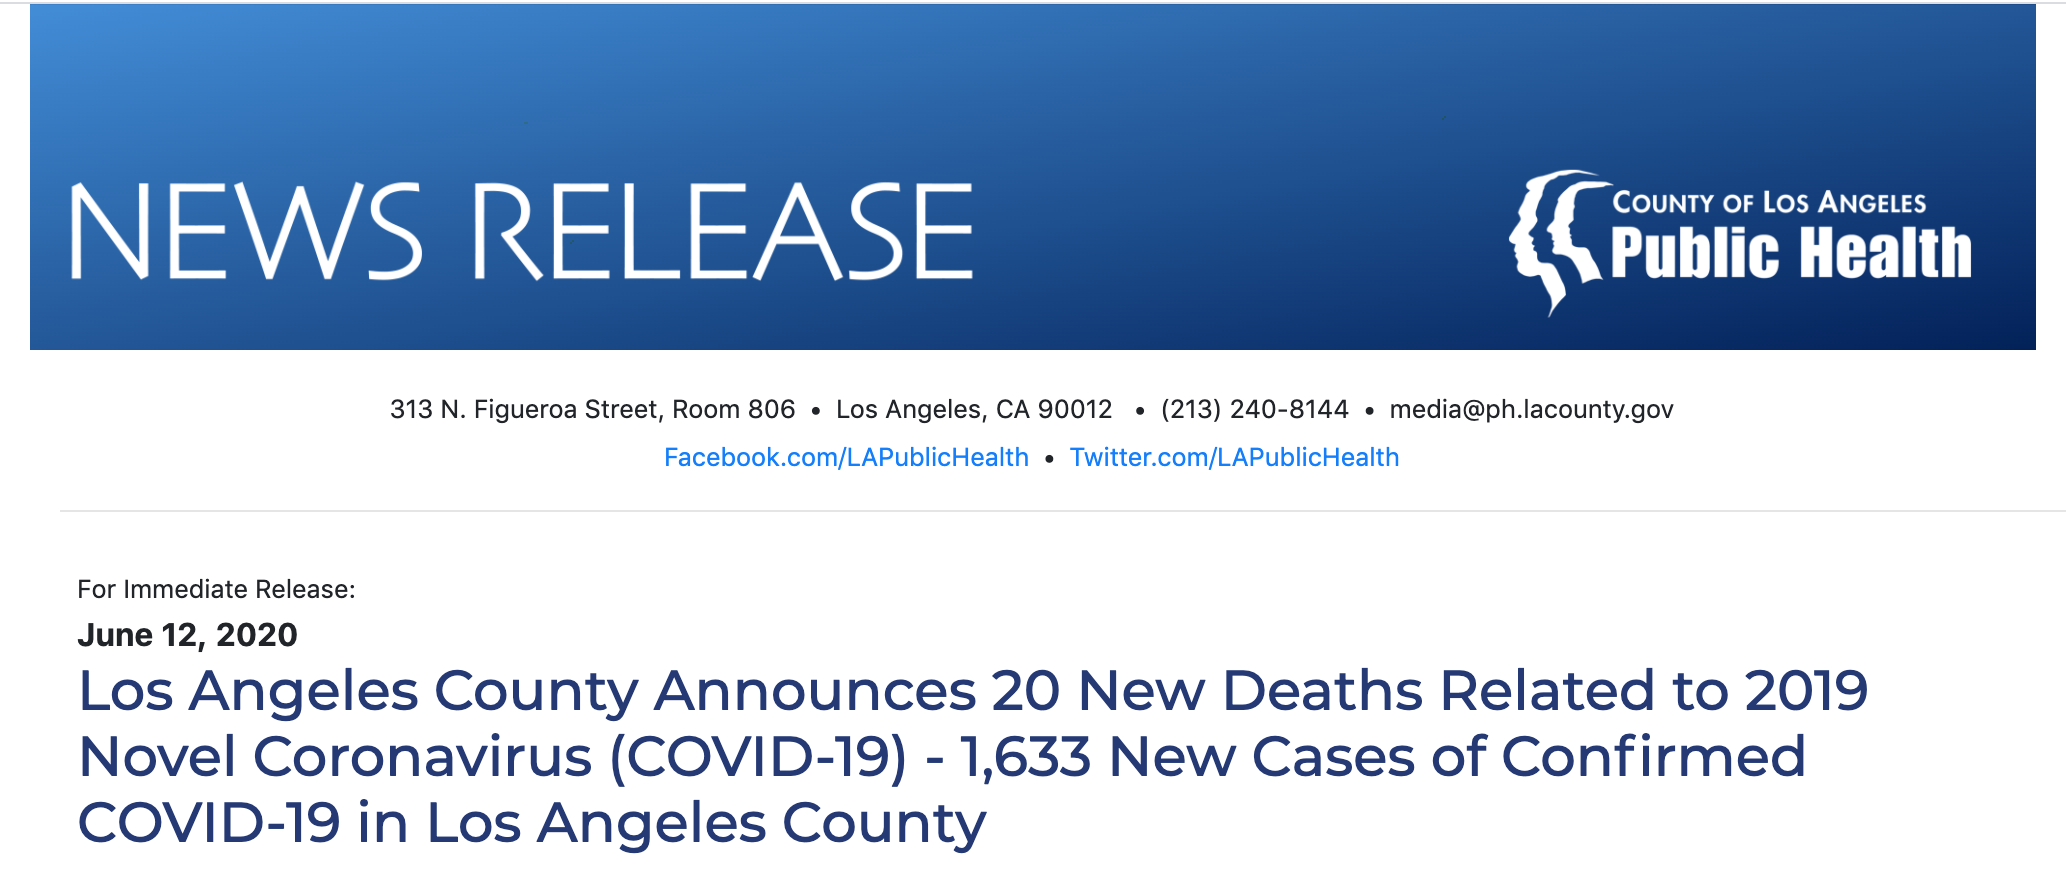 Los Angeles County Announces 20 New Deaths Related to 2019 Novel Coronavirus (COVID-19) - 1,633 New Cases